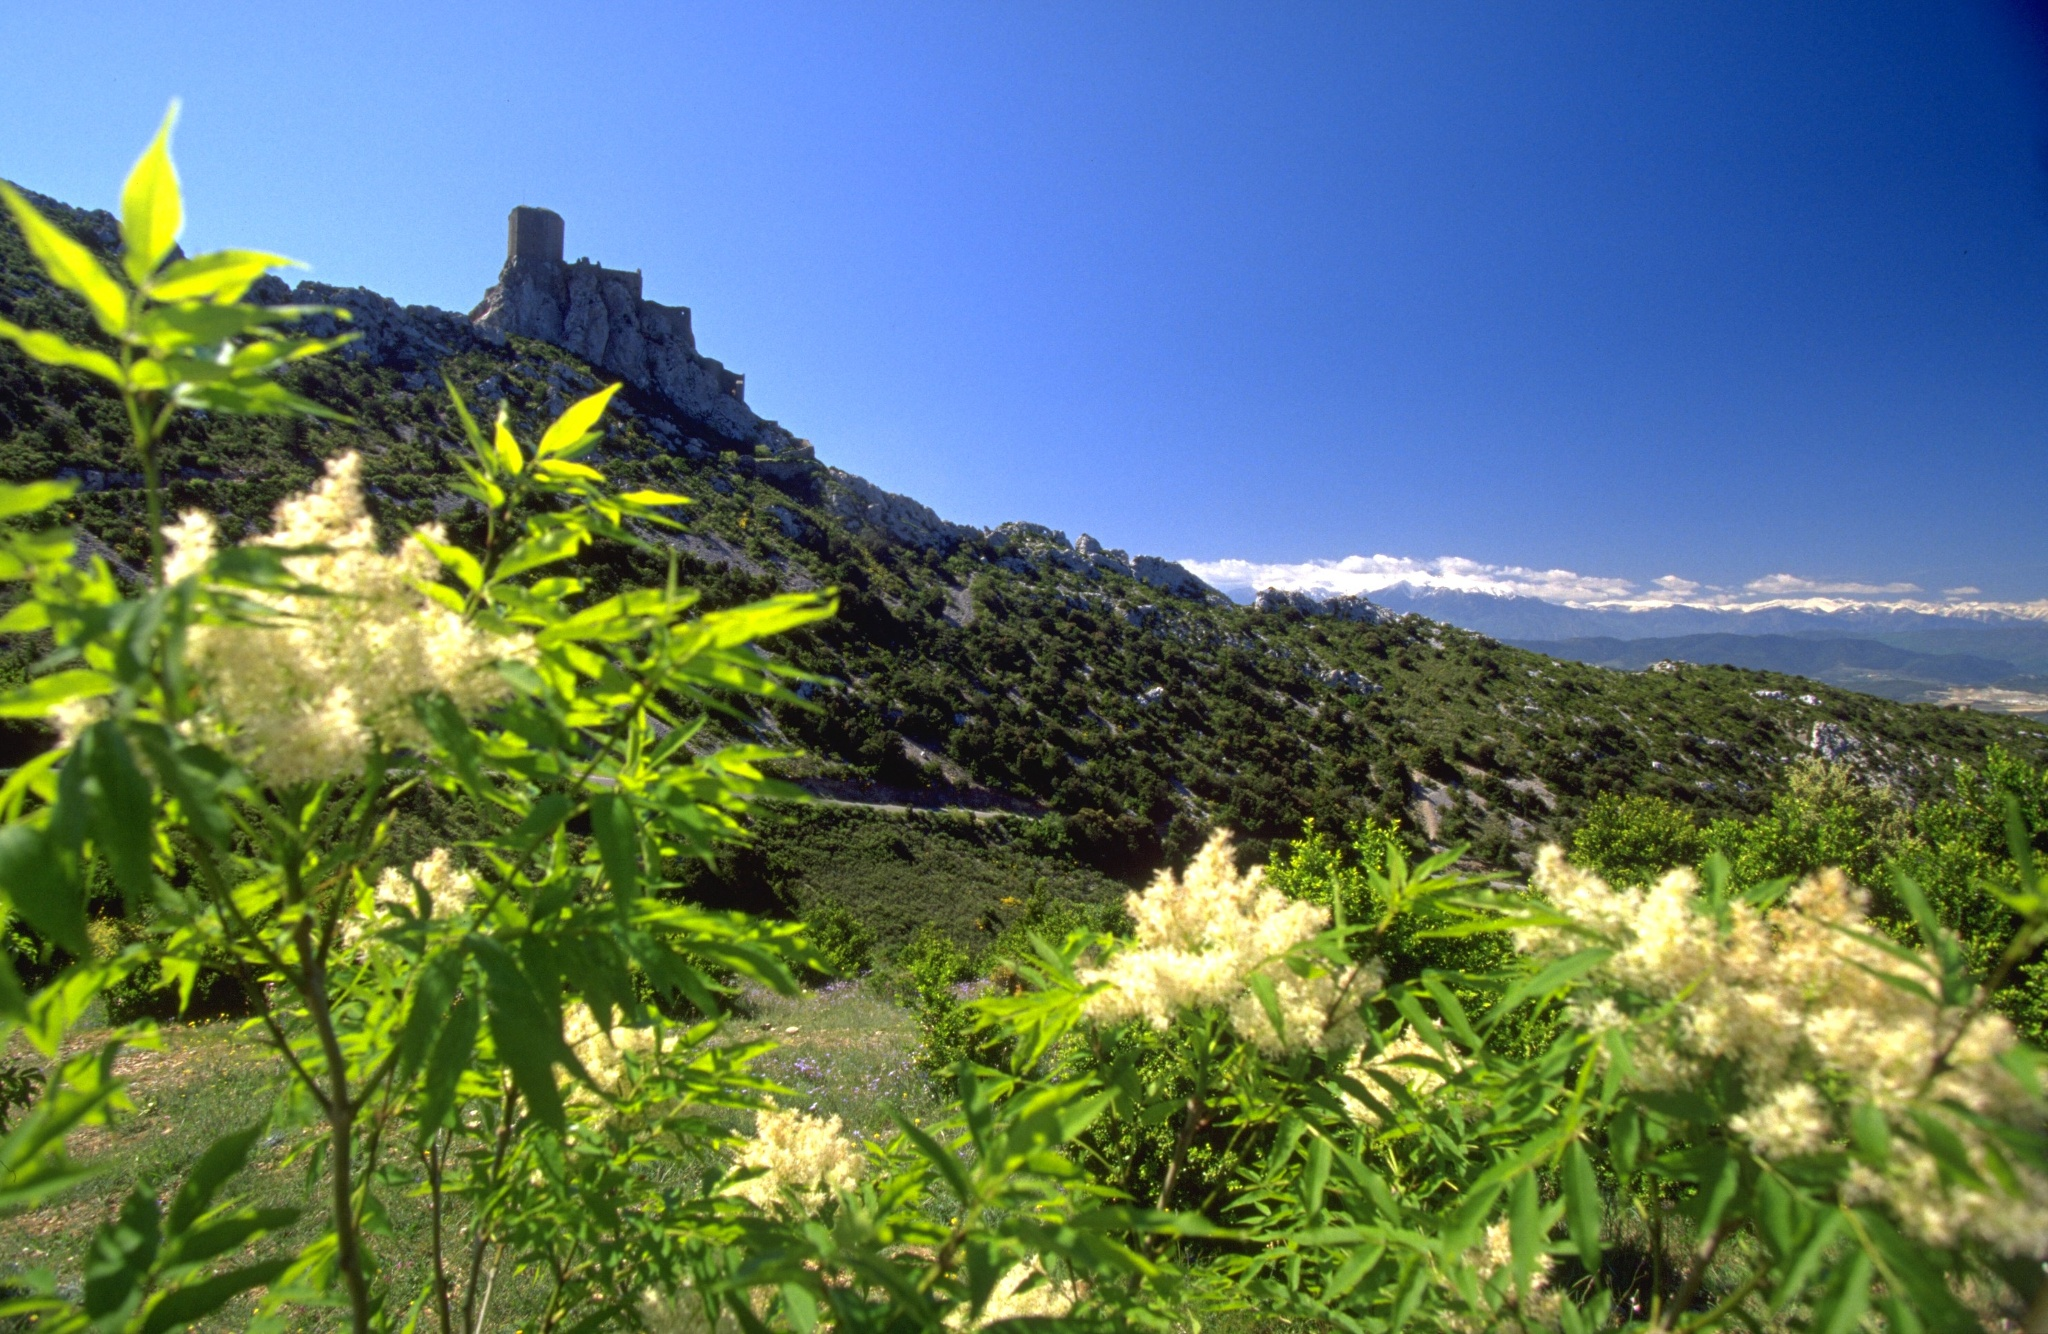 The Cathar castles' route • Scenic Route » outdooractive.com